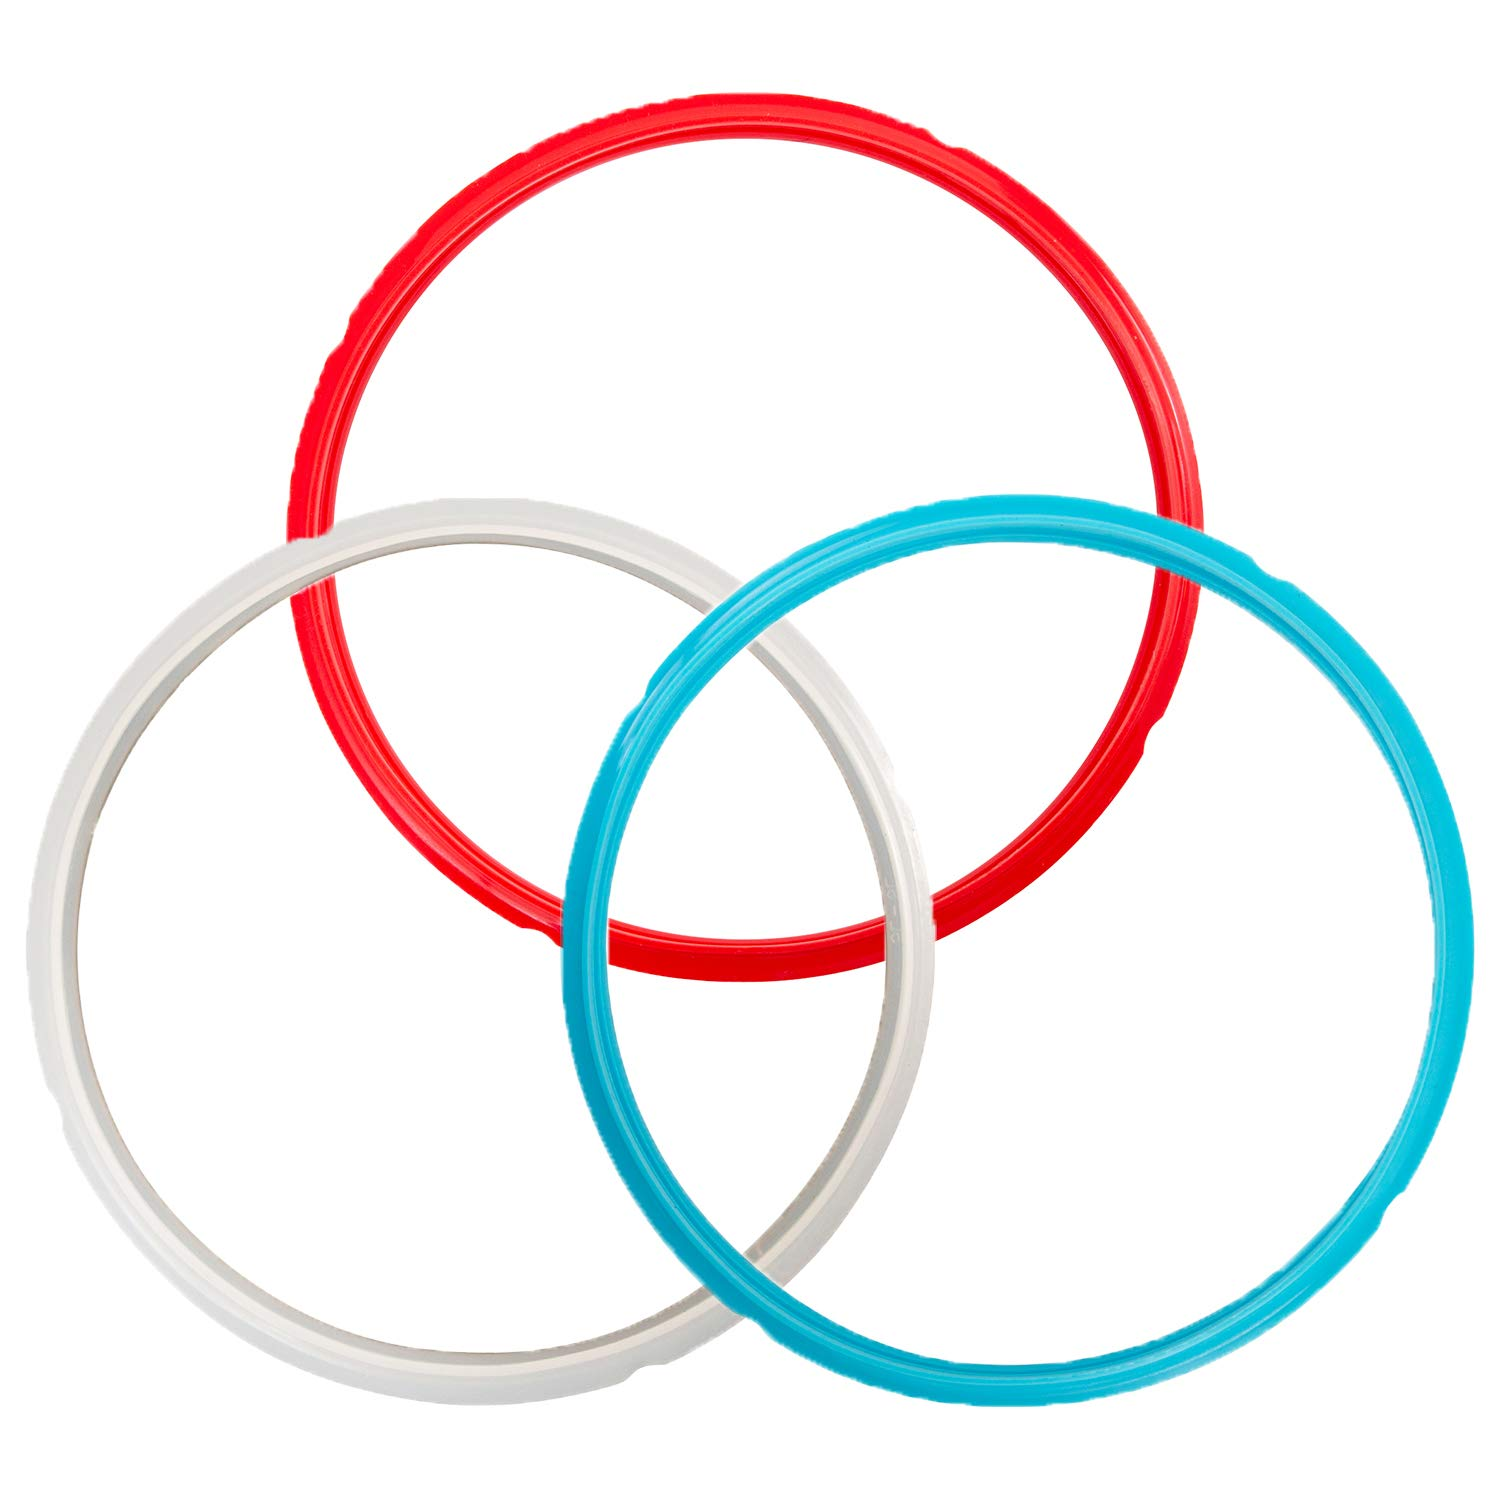 """Houseables Pressure Cooker Sealing Ring, for 6qt and 5qt Instant Pot, Diameter 9.5"""", 3 Pk, Silicone, Food-Grade Gasket, Multicolor, No BPA, Universal, Genuine Replacement Parts, Dishwasher Safe"""